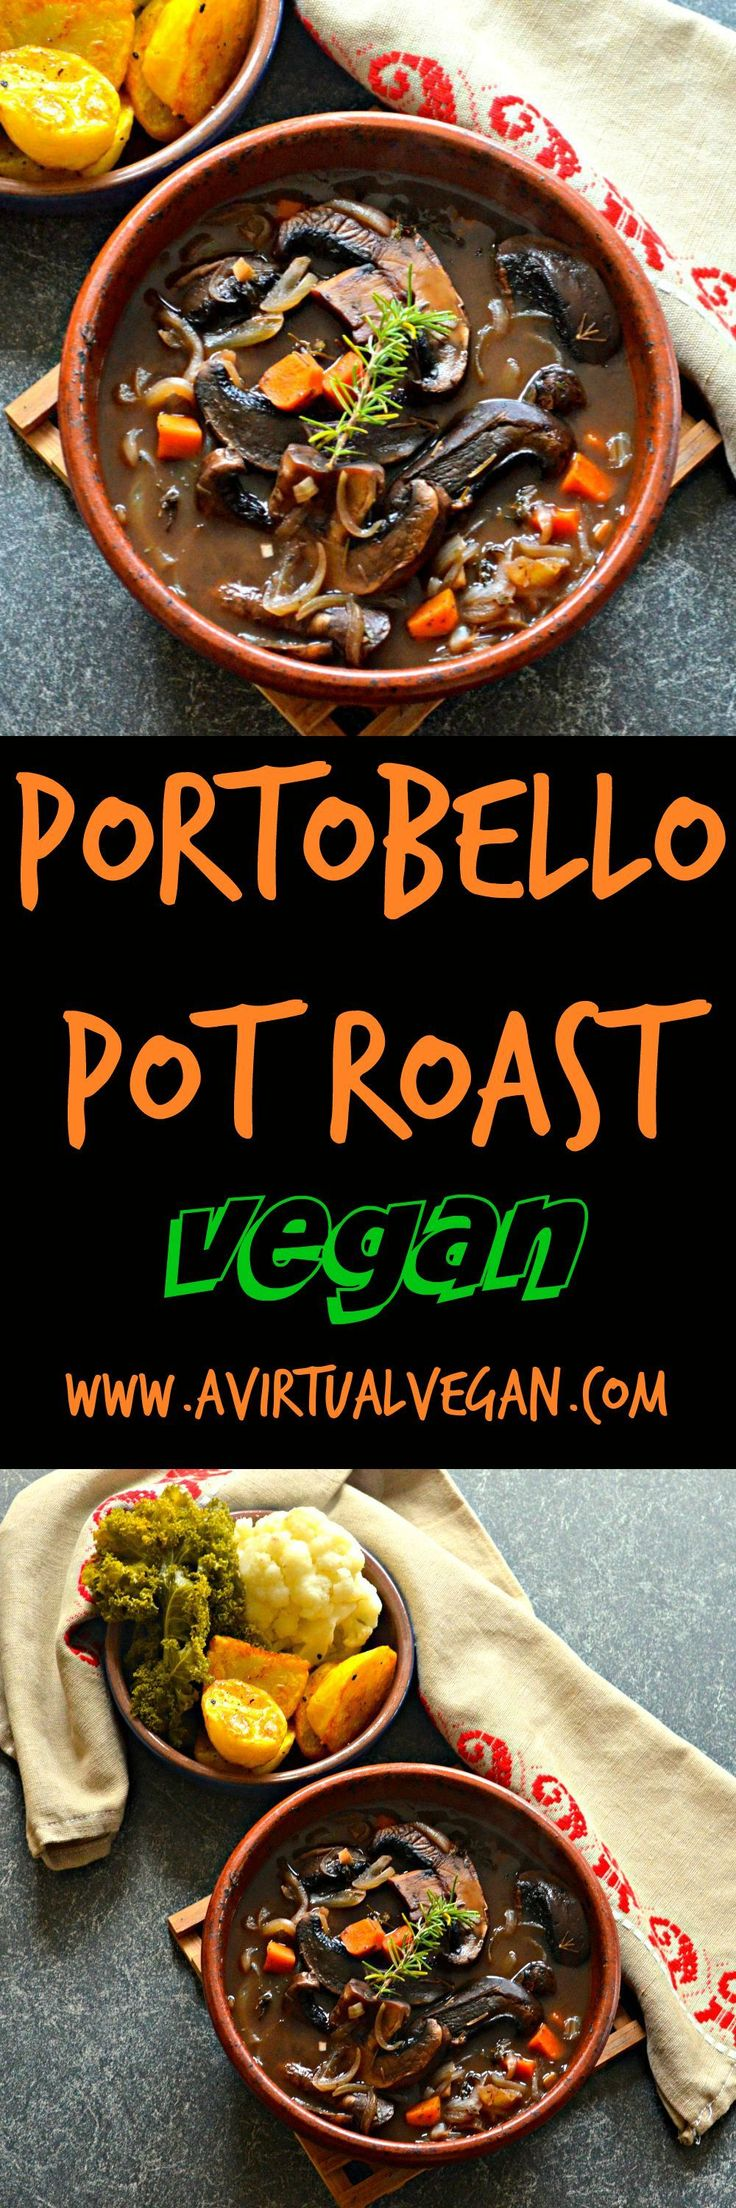 Rich and hearty Portobello Pot Roast. Meaty portobello mushrooms, red wine, herbs & vegetables combine to make a delicious plant-based feast. Perfect for Christmas!